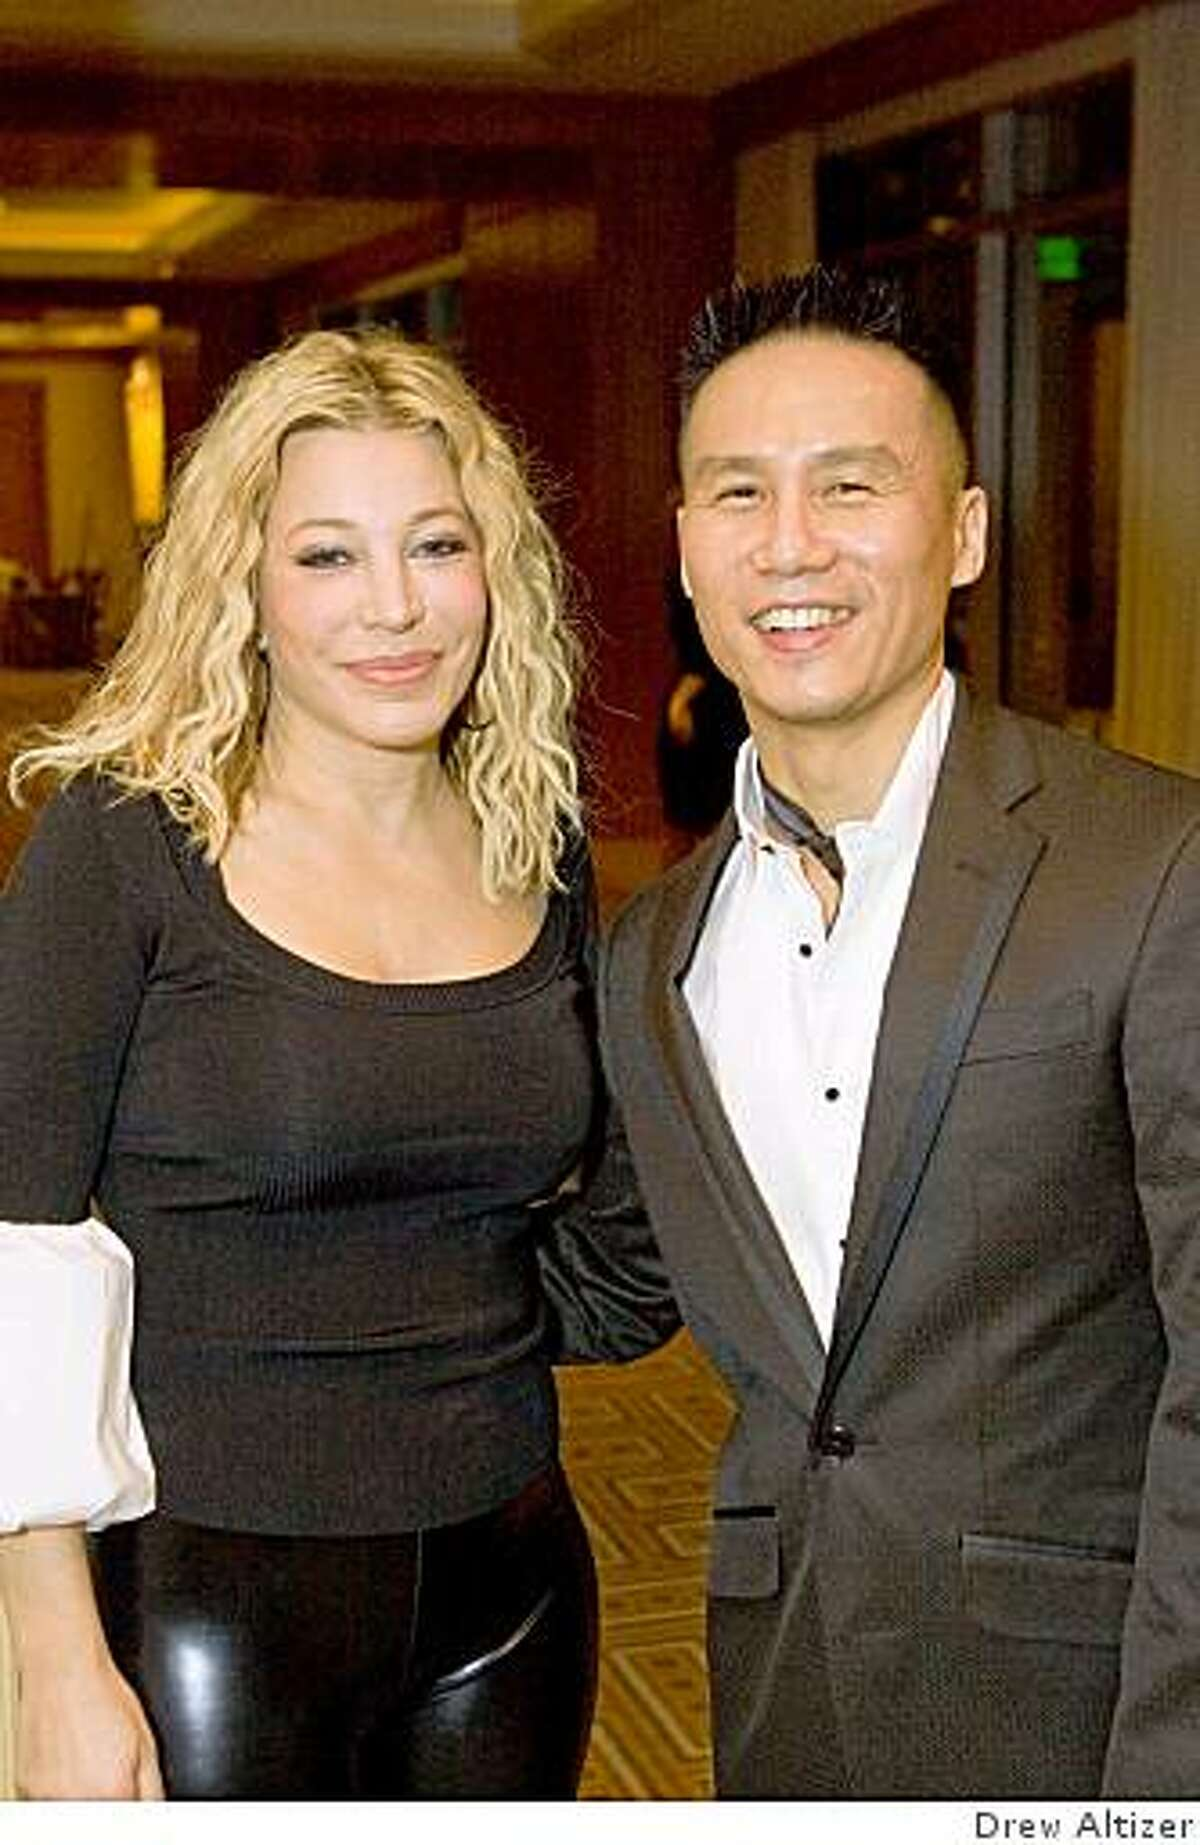 AmFar's 10th annual San Francisco Gala was held Nov. 15 at the Four Seasons. Pop star Taylor Dayne (left) performed and Tony Award-winning actor B.D. Wong emceed.Taylor Dayne, B.D. Wong